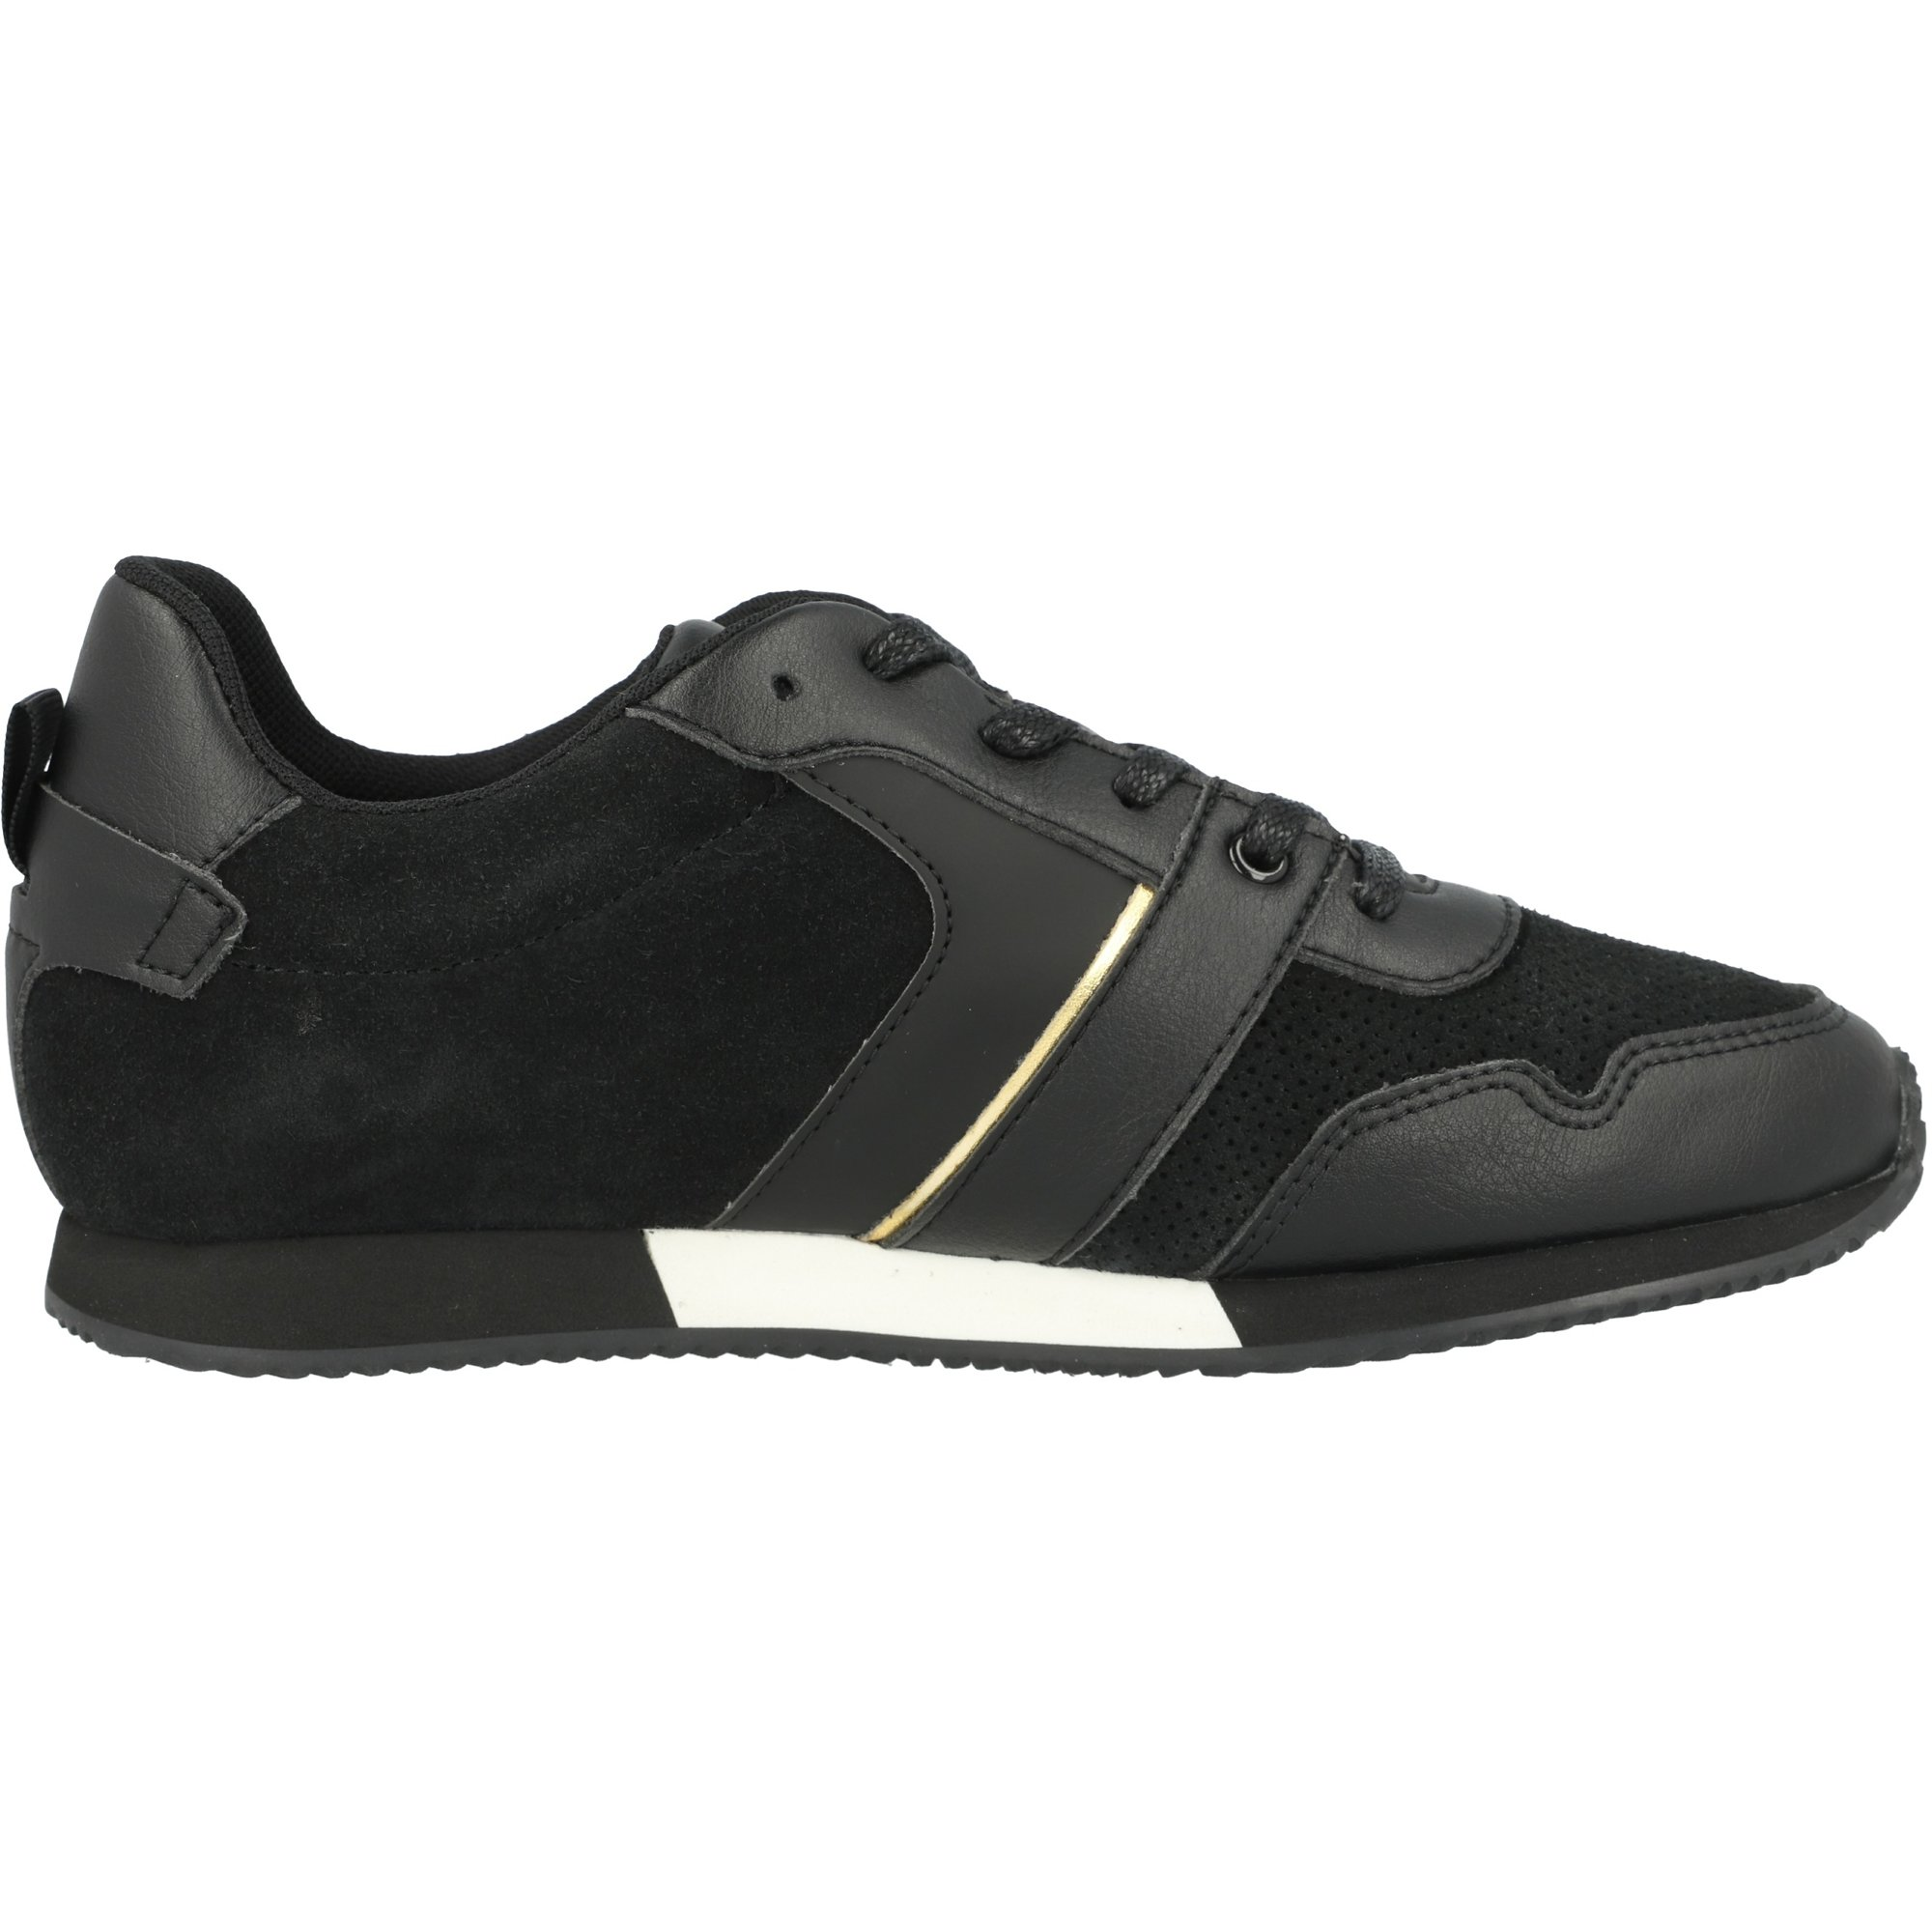 BOSS Trainers Black Suede